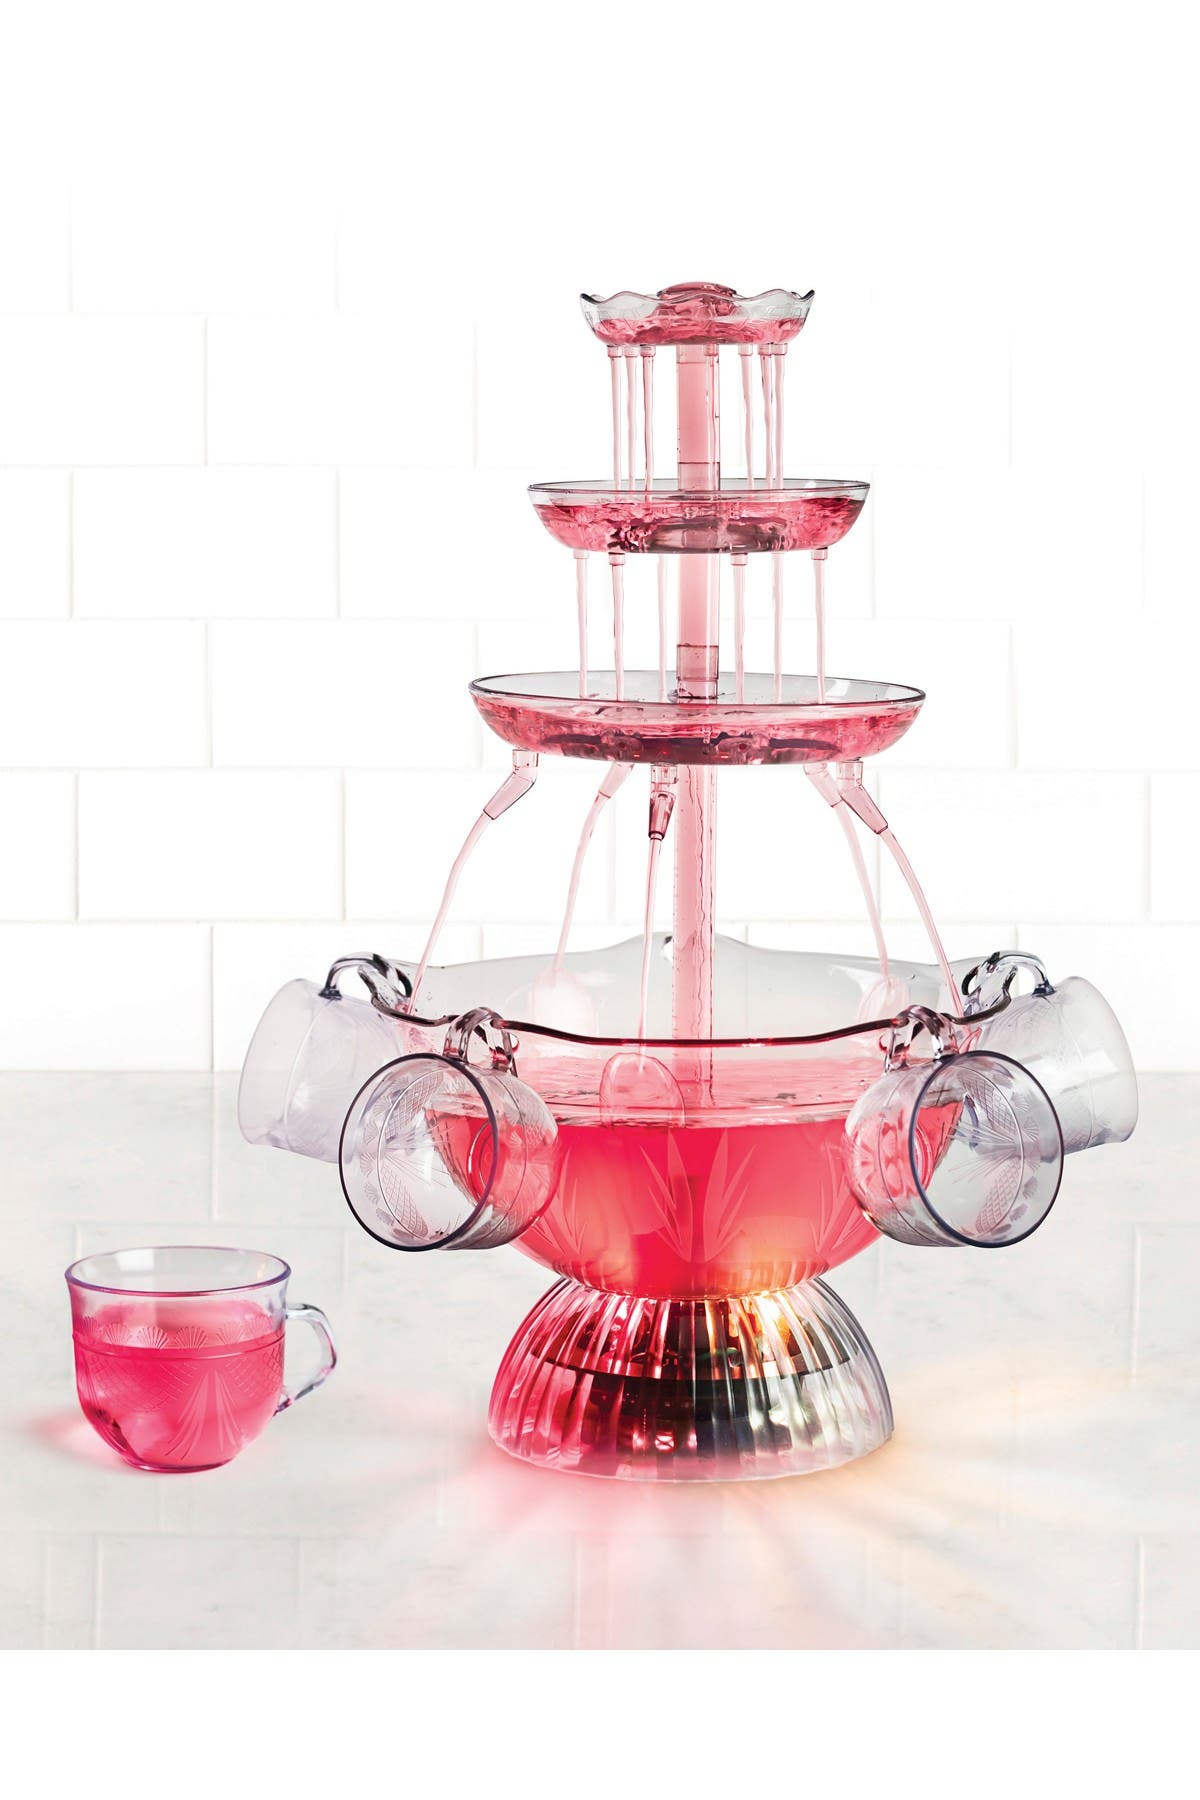 Image of Nostalgia Lighted Party Fountain